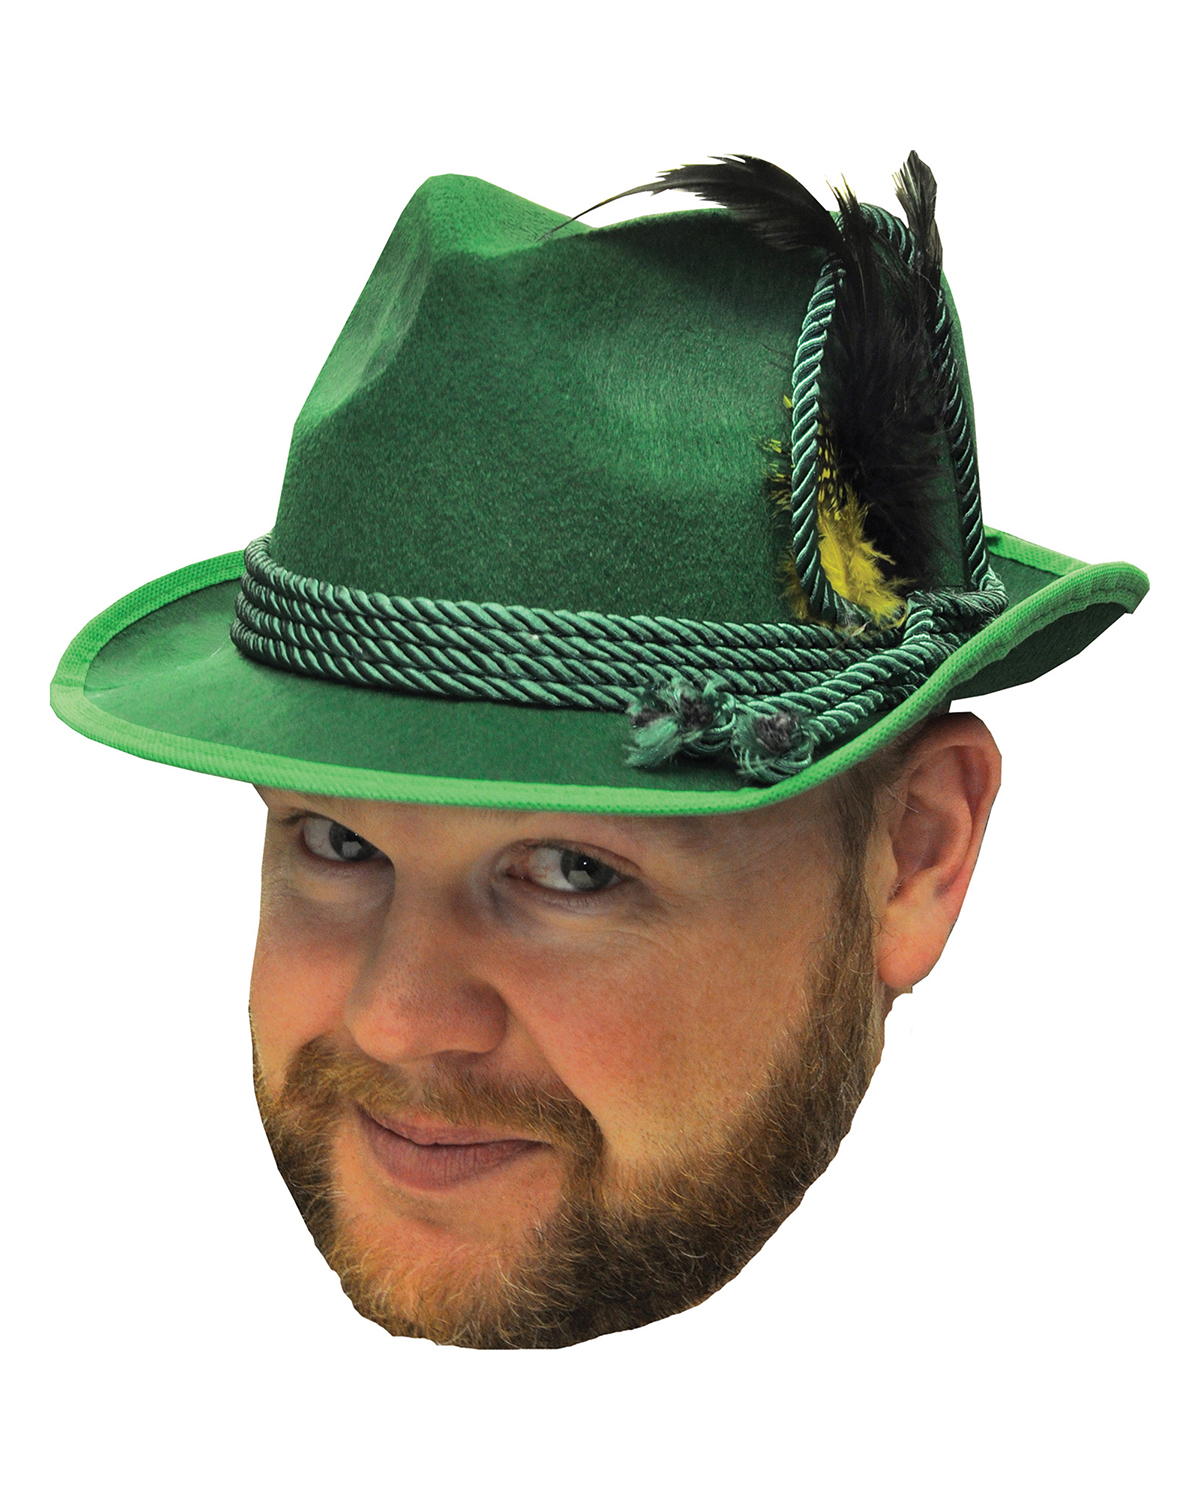 Halloween Costumes FM64580 Octoberfest Hat Green One Size at GotApparel